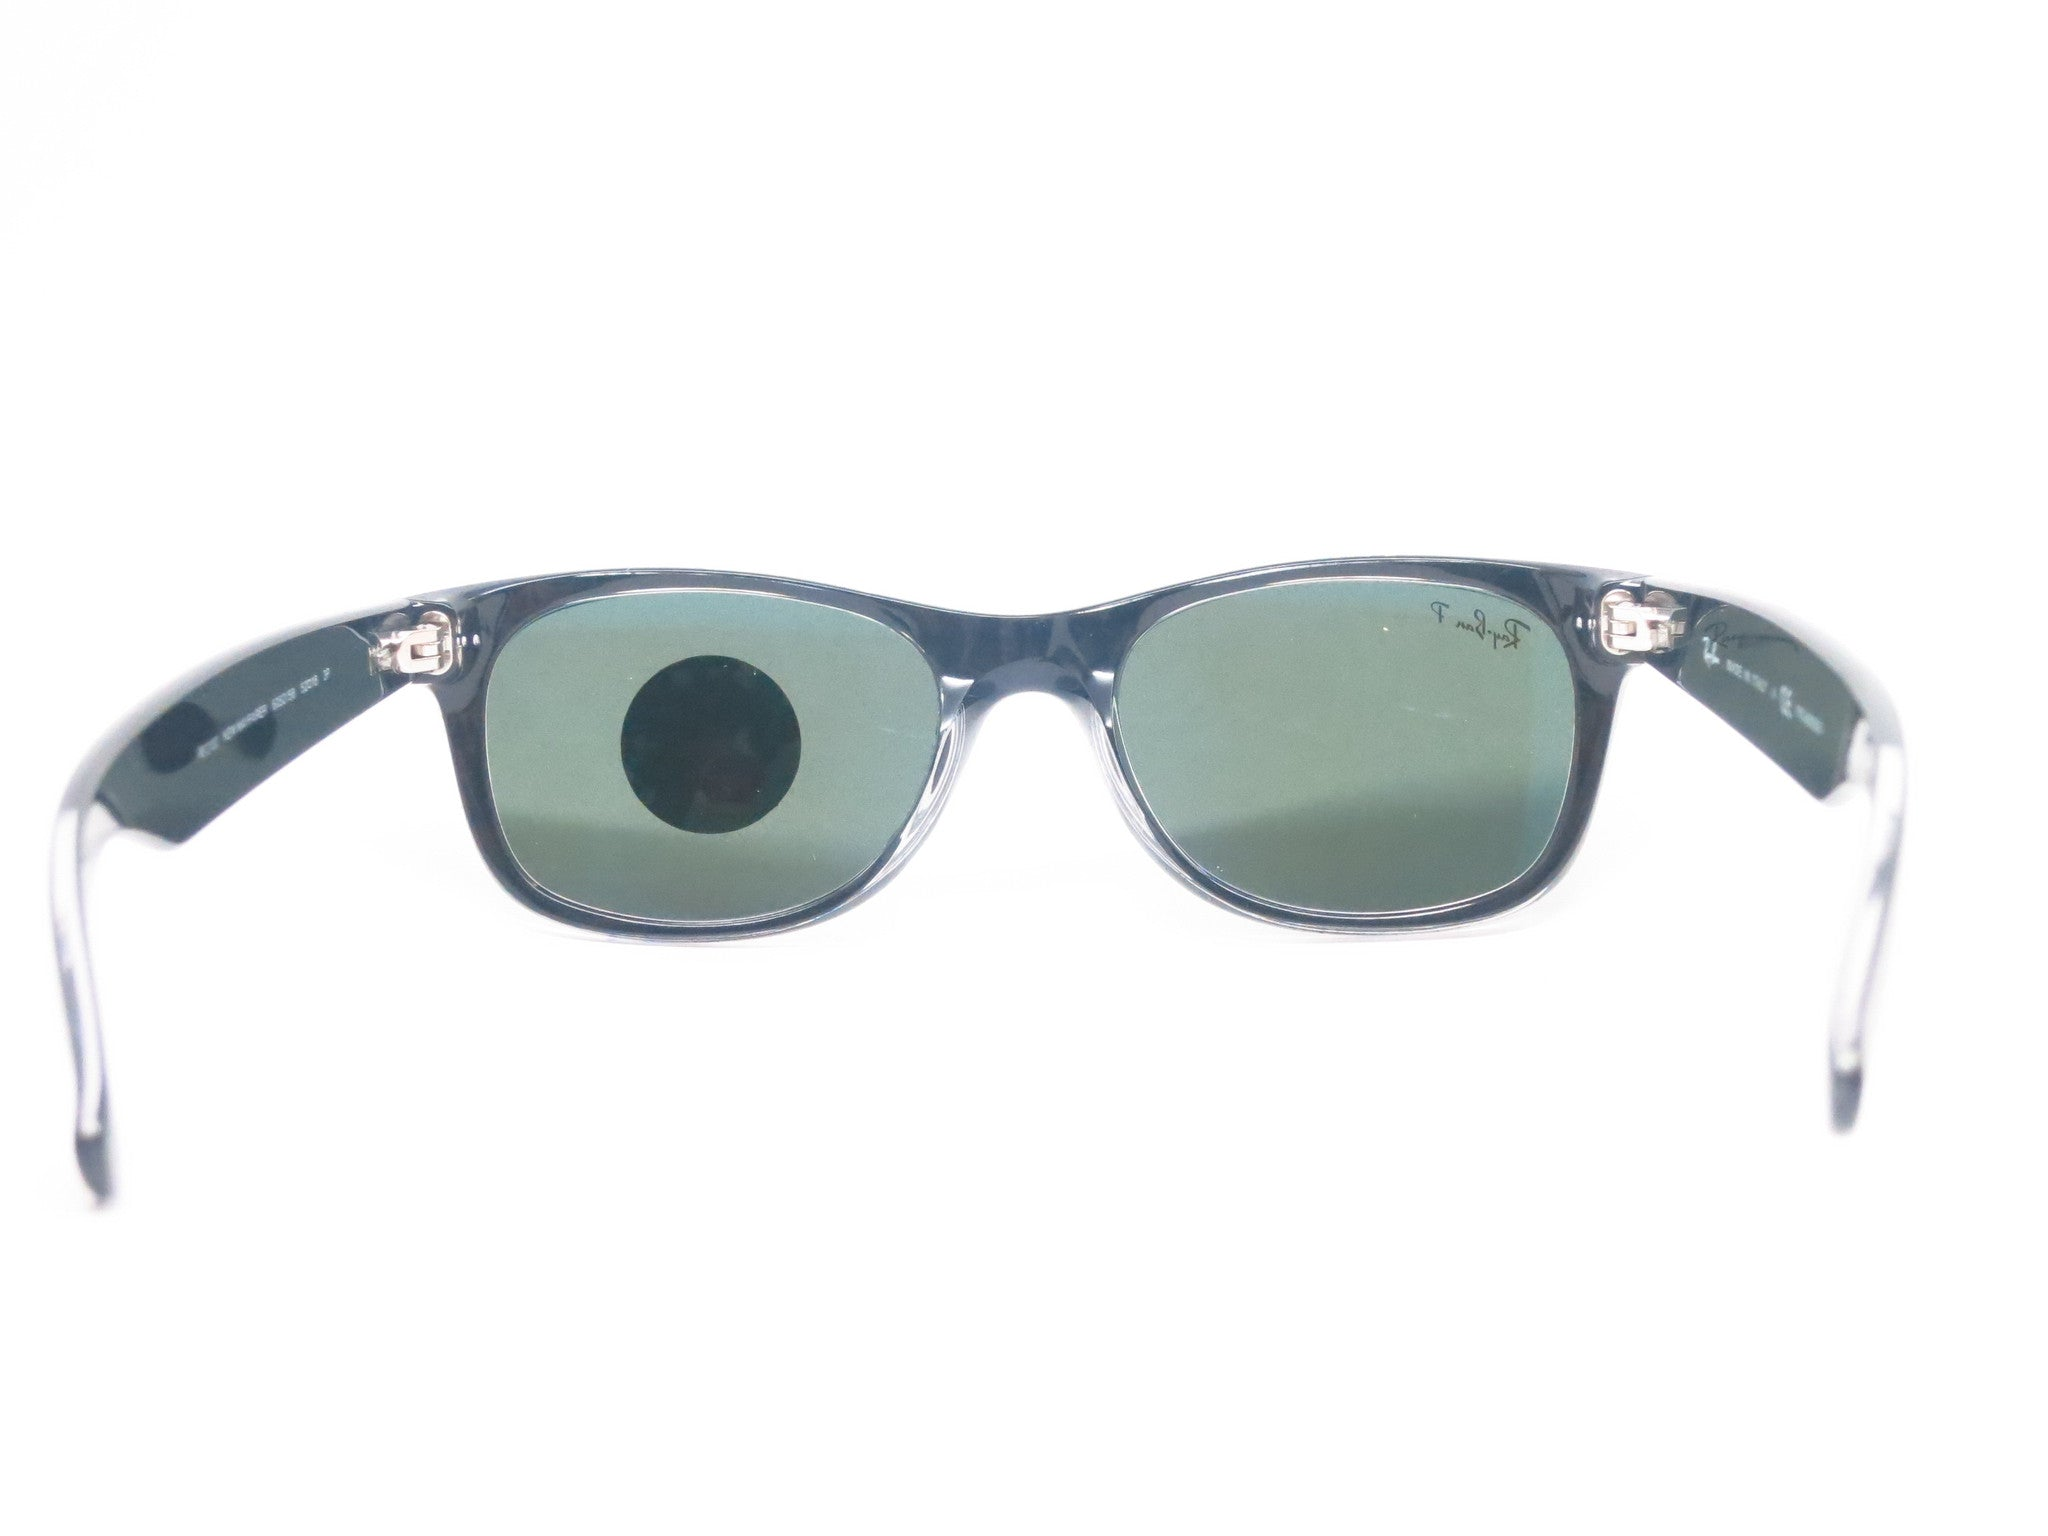 6c9d2794268 ... Ray-Ban RB 2132 New Wayfarer 6052 58 52mm Top Black on Transparent  Polarized ...